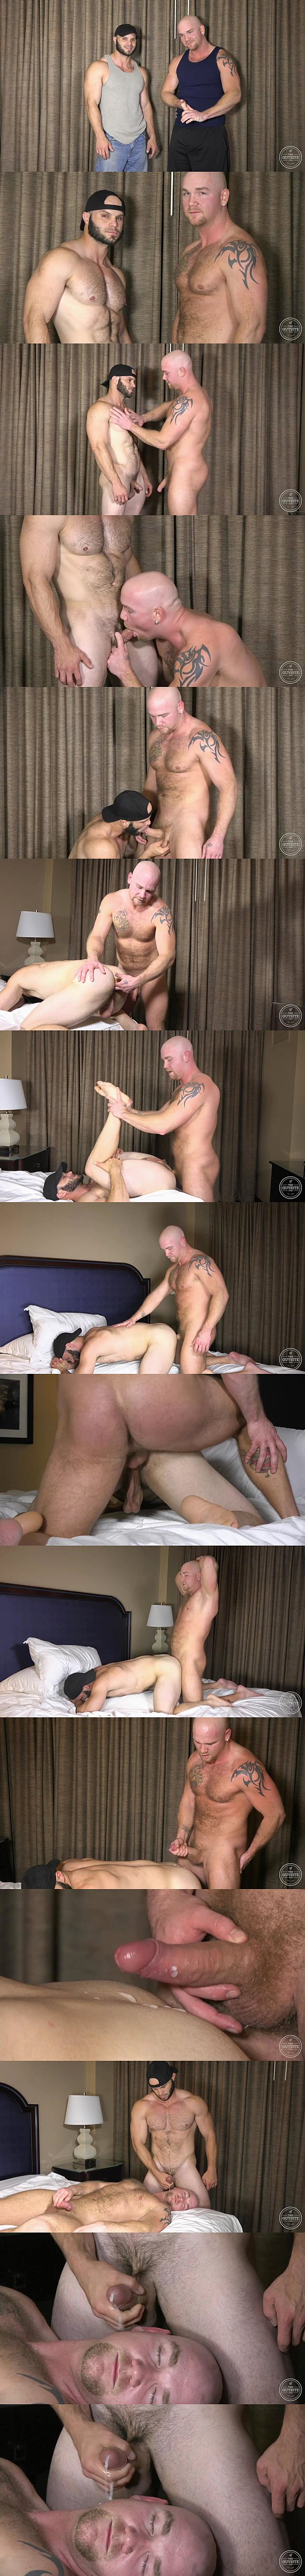 Junior fucks hot hairy hunk Johnny's tight ass until they shoot two creamy loads at Theguysite 02